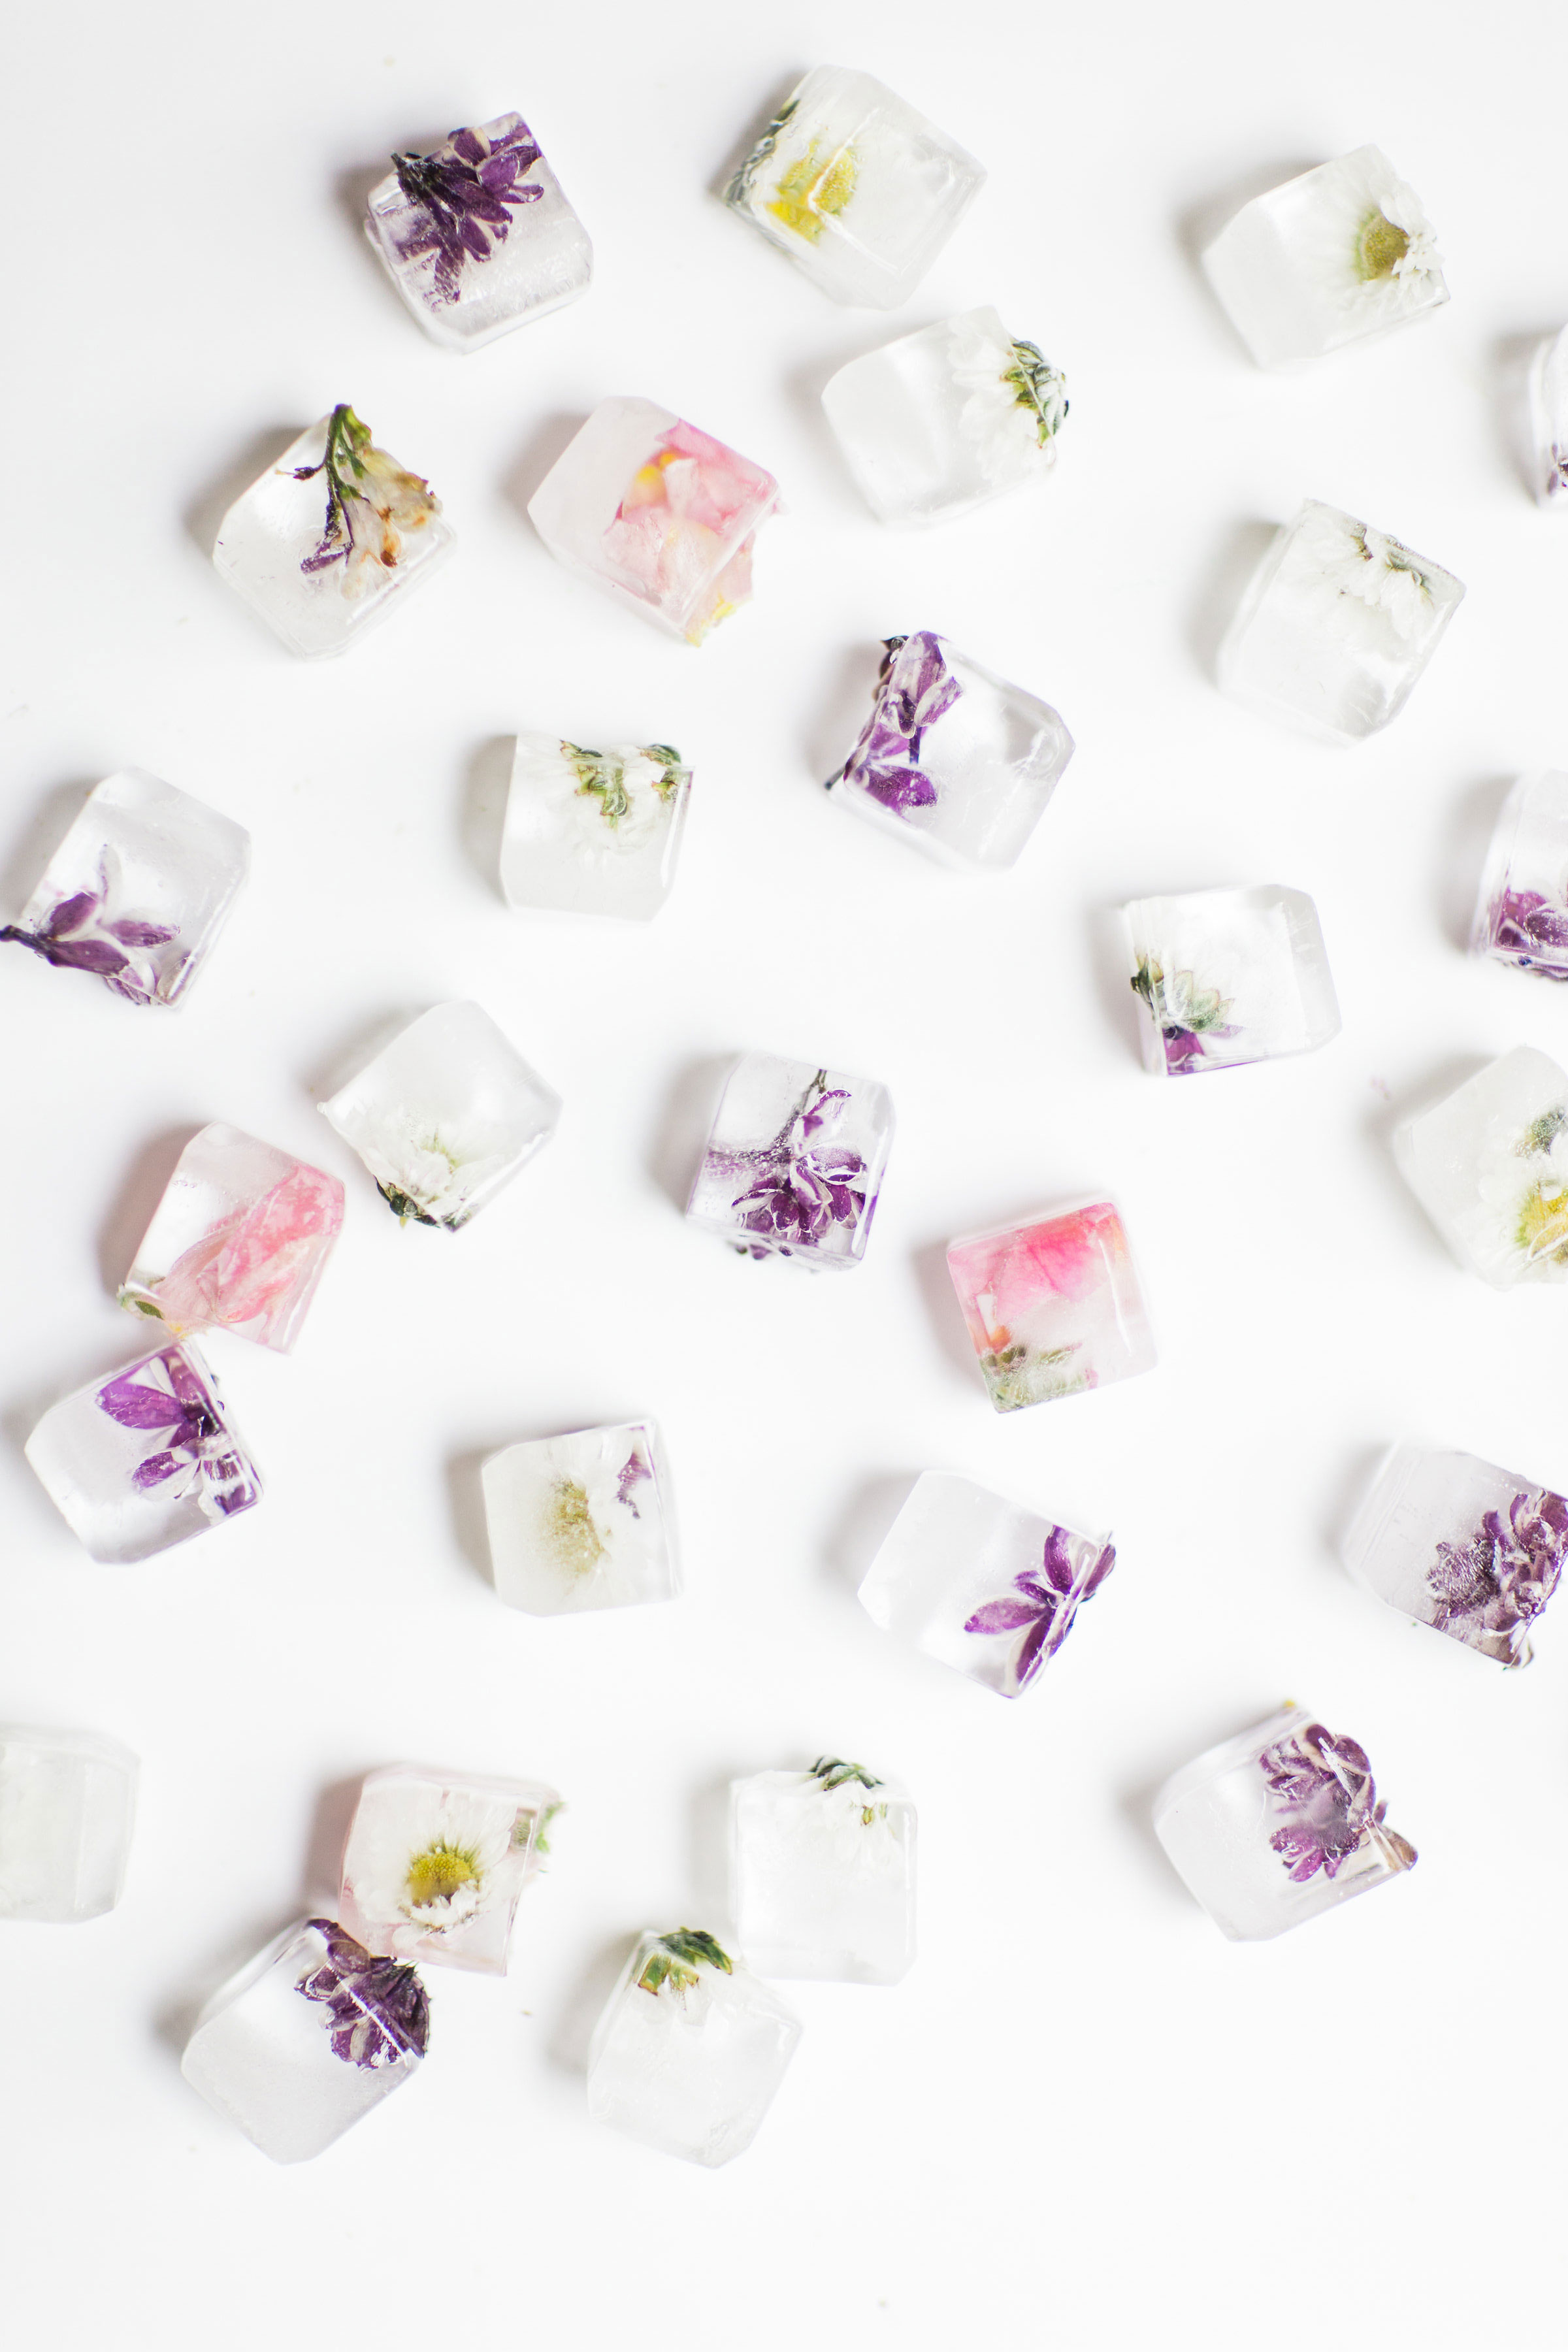 How to make the prettiest simple DIY floral ice cubes using fresh flowers for your next party. | glitterinc.com | @glitterinc